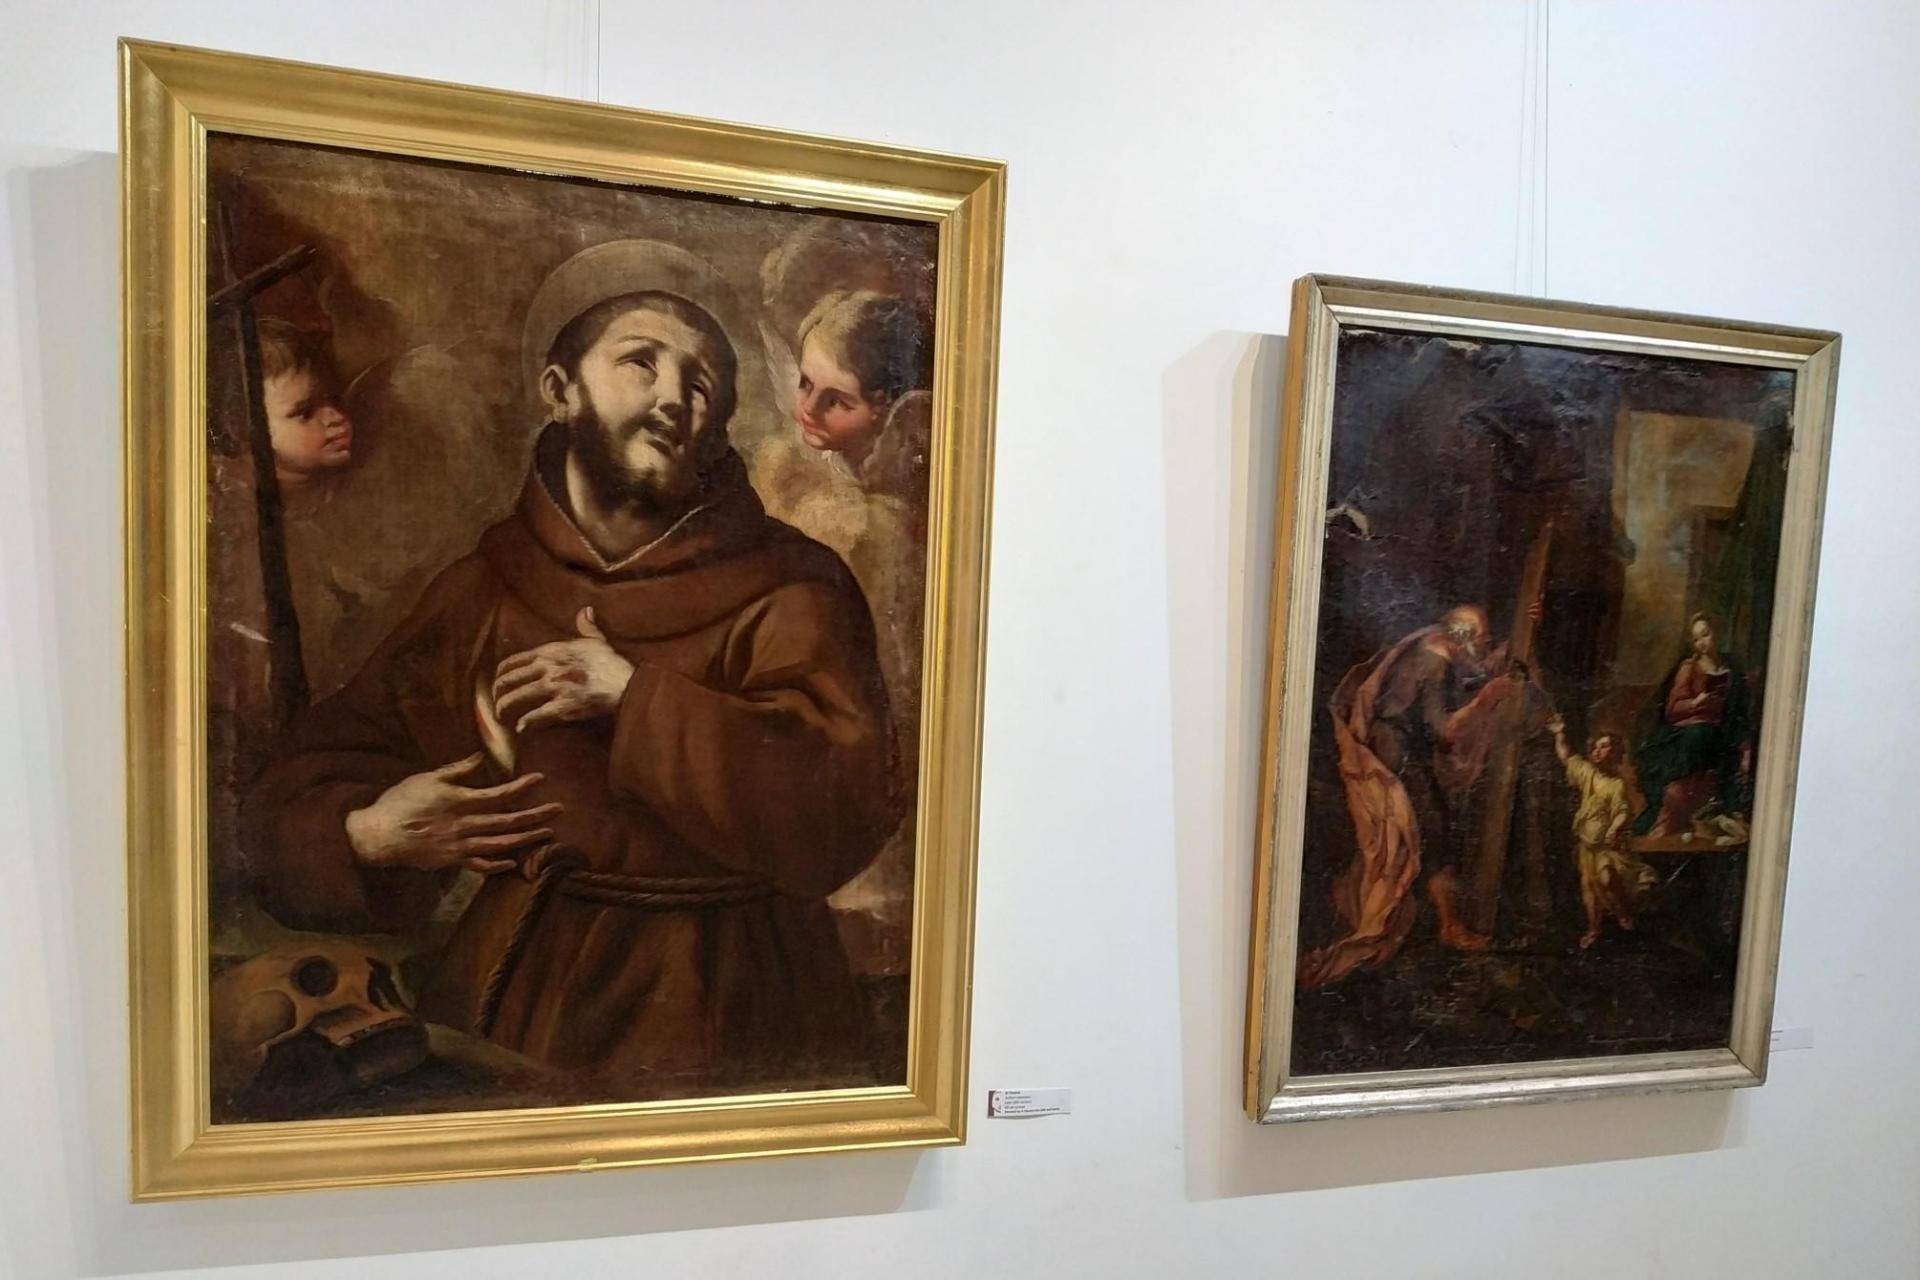 Donated works on show